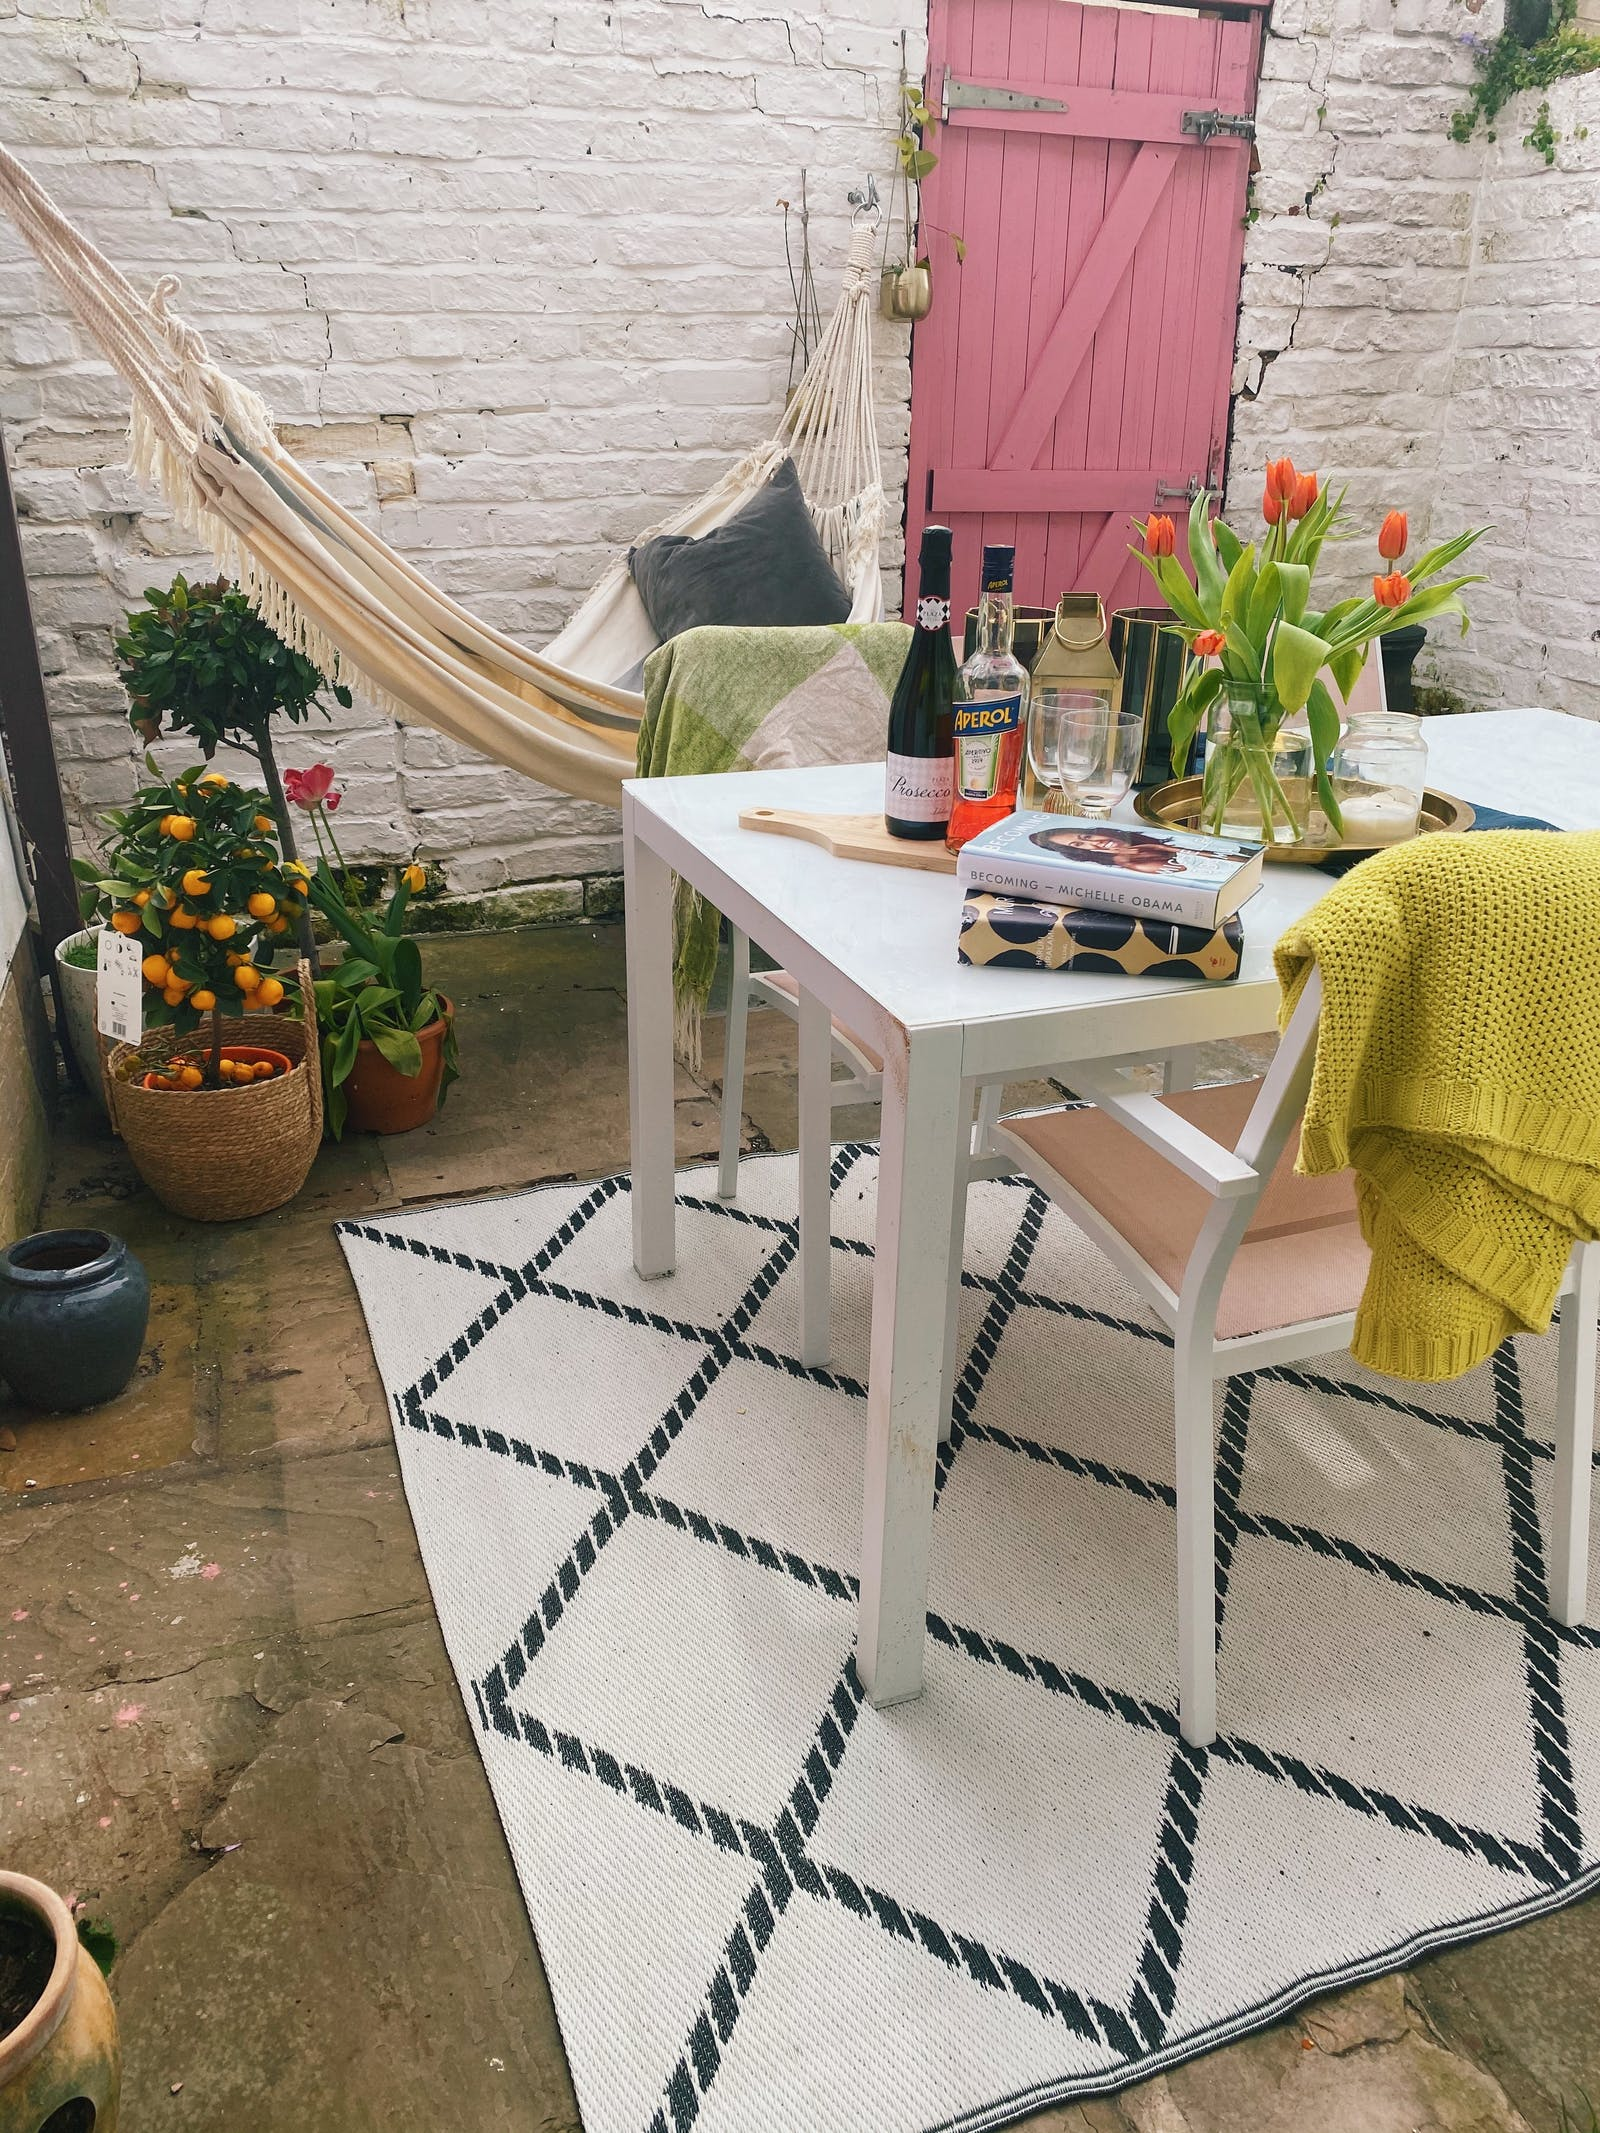 Garden with a table and a patterned rug with a door painted in pastel bubblegum pink